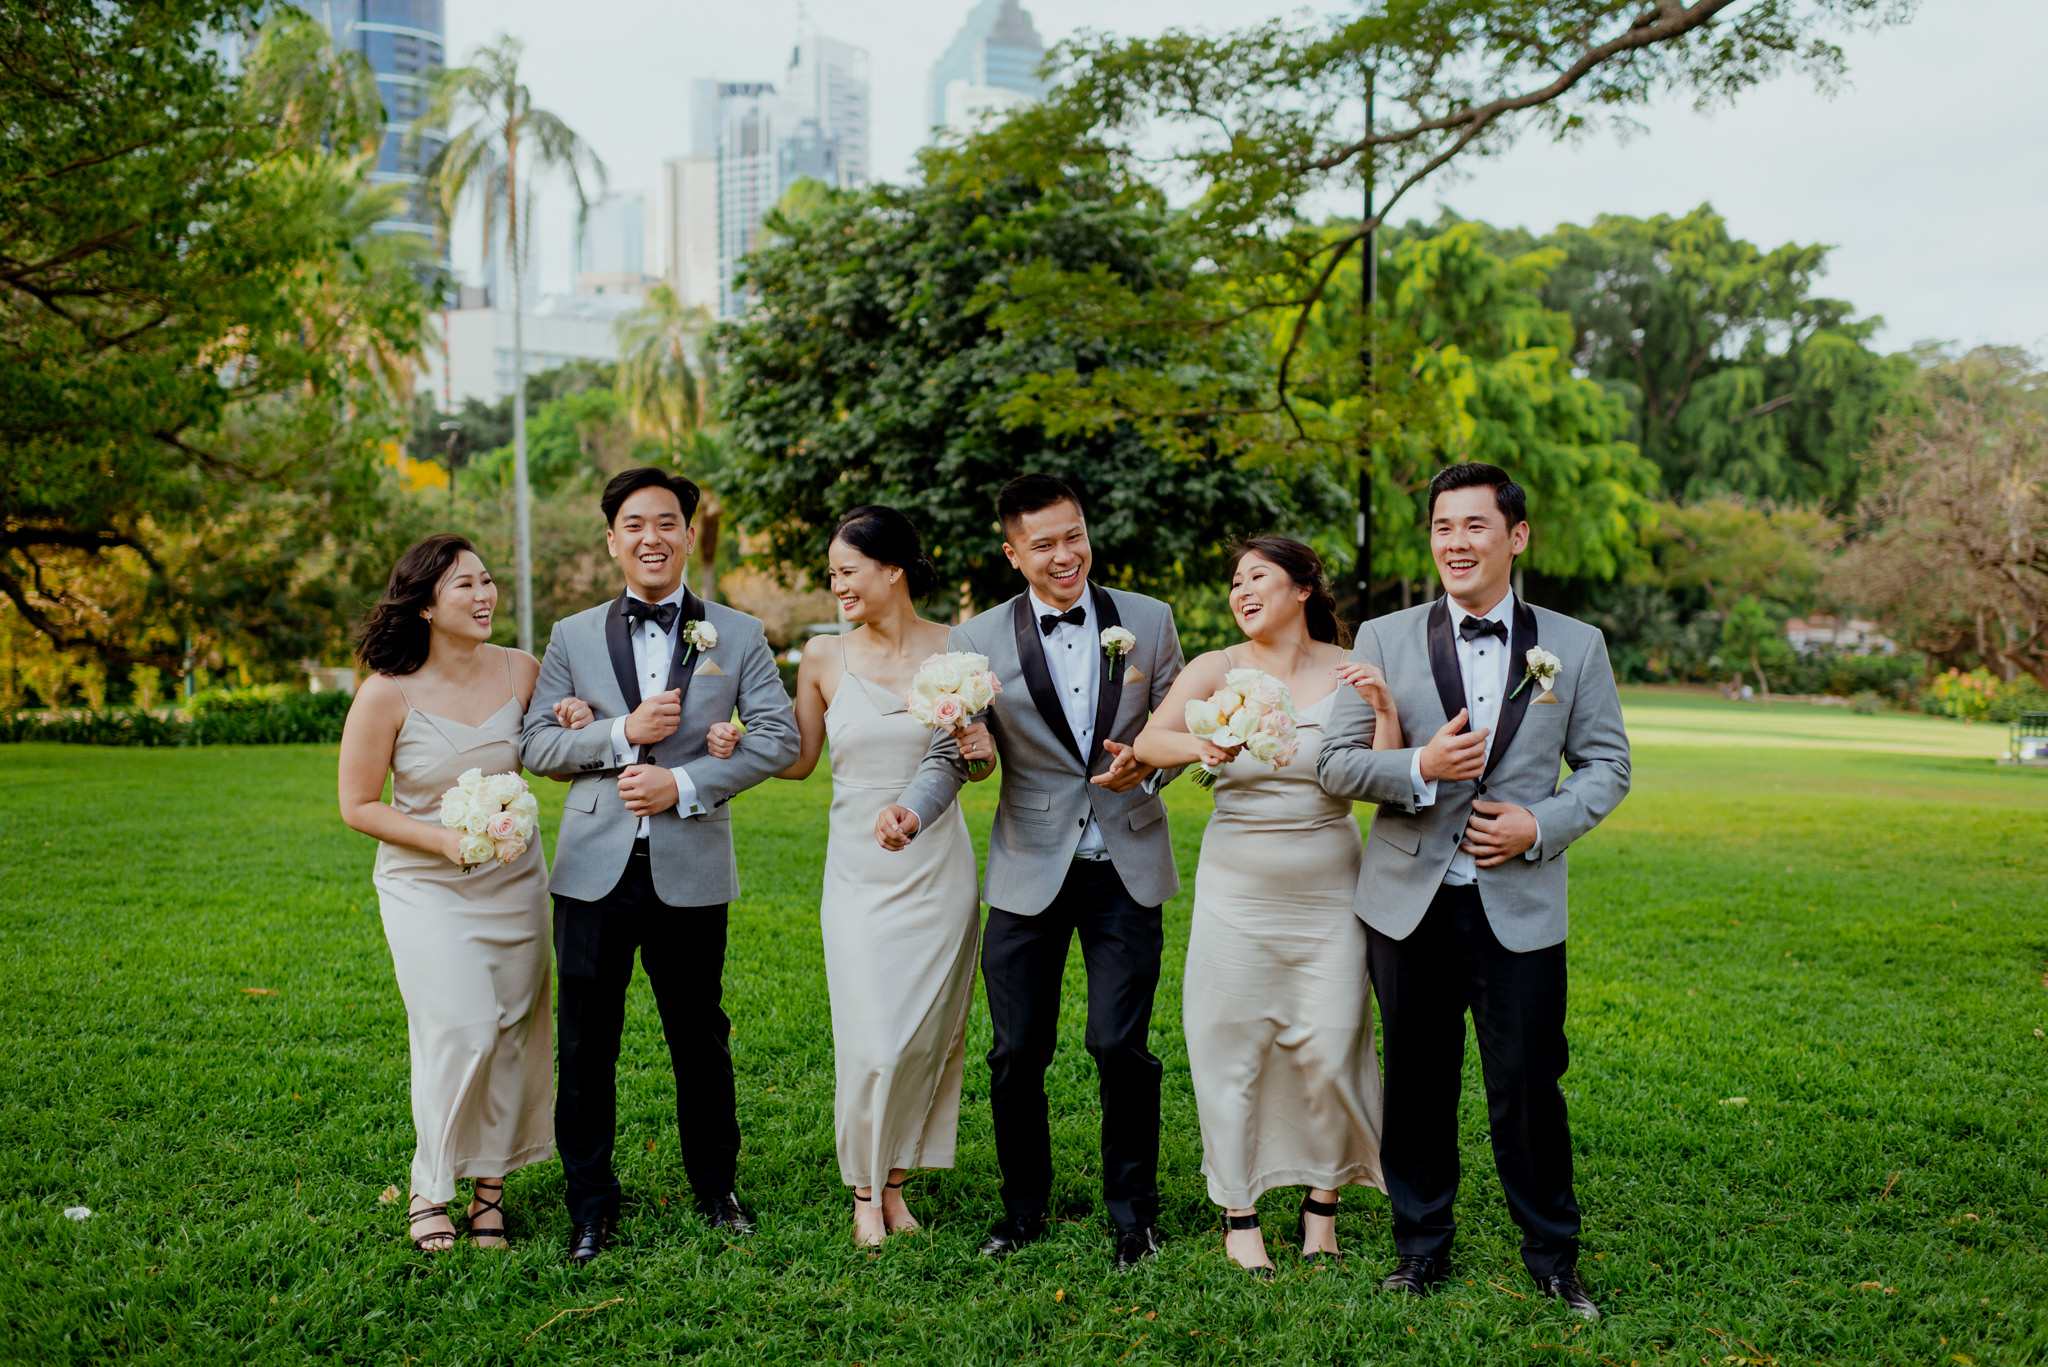 Three groomsmen and three bridesmaids link arms and laugh together